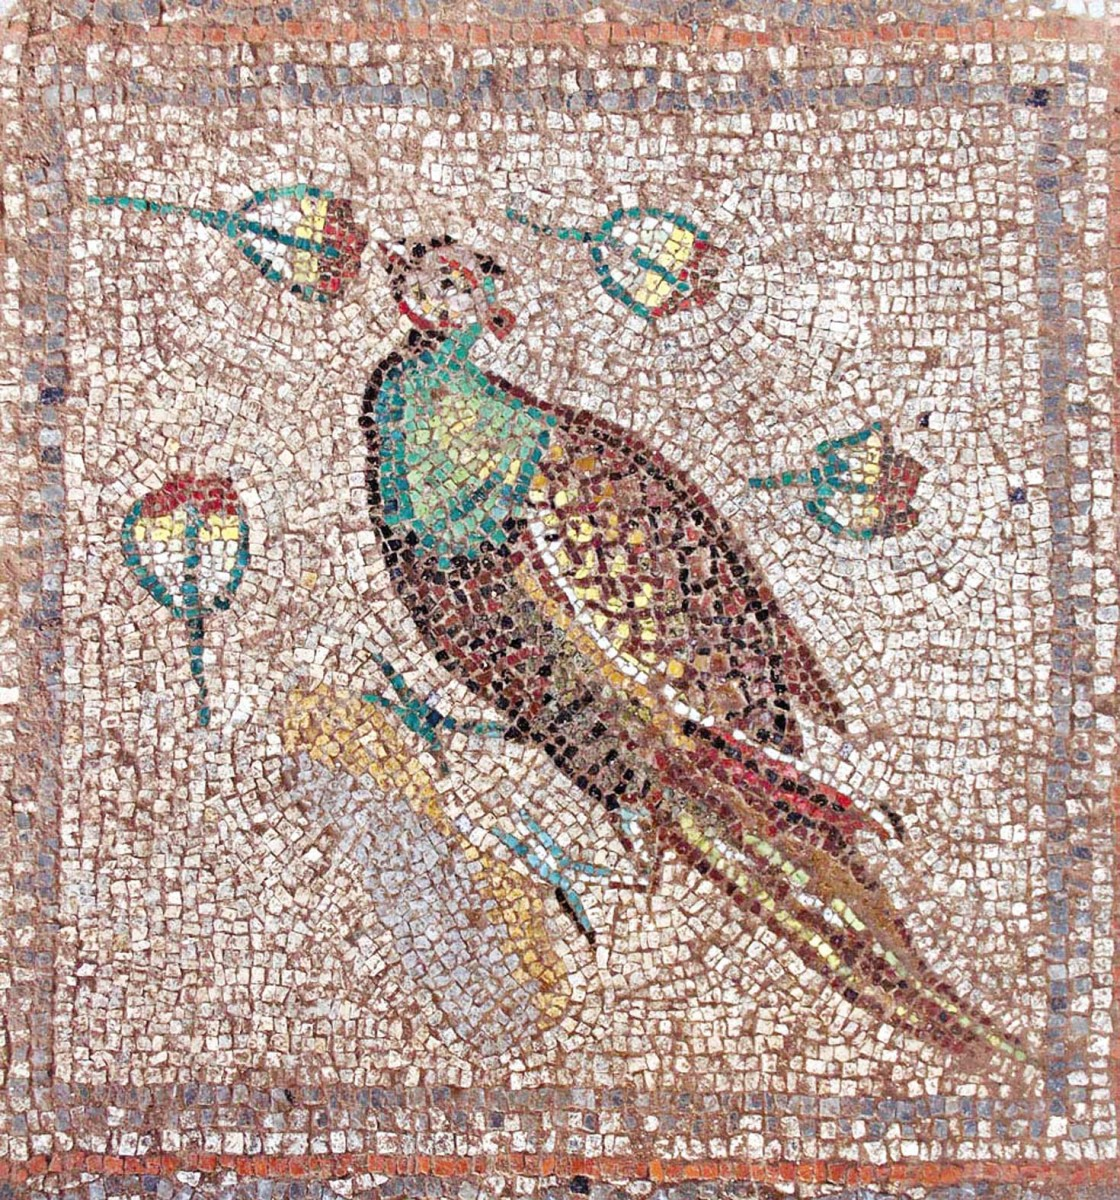 The mosaics are decorated with natural stones. You can see various shades of red, blue and green.